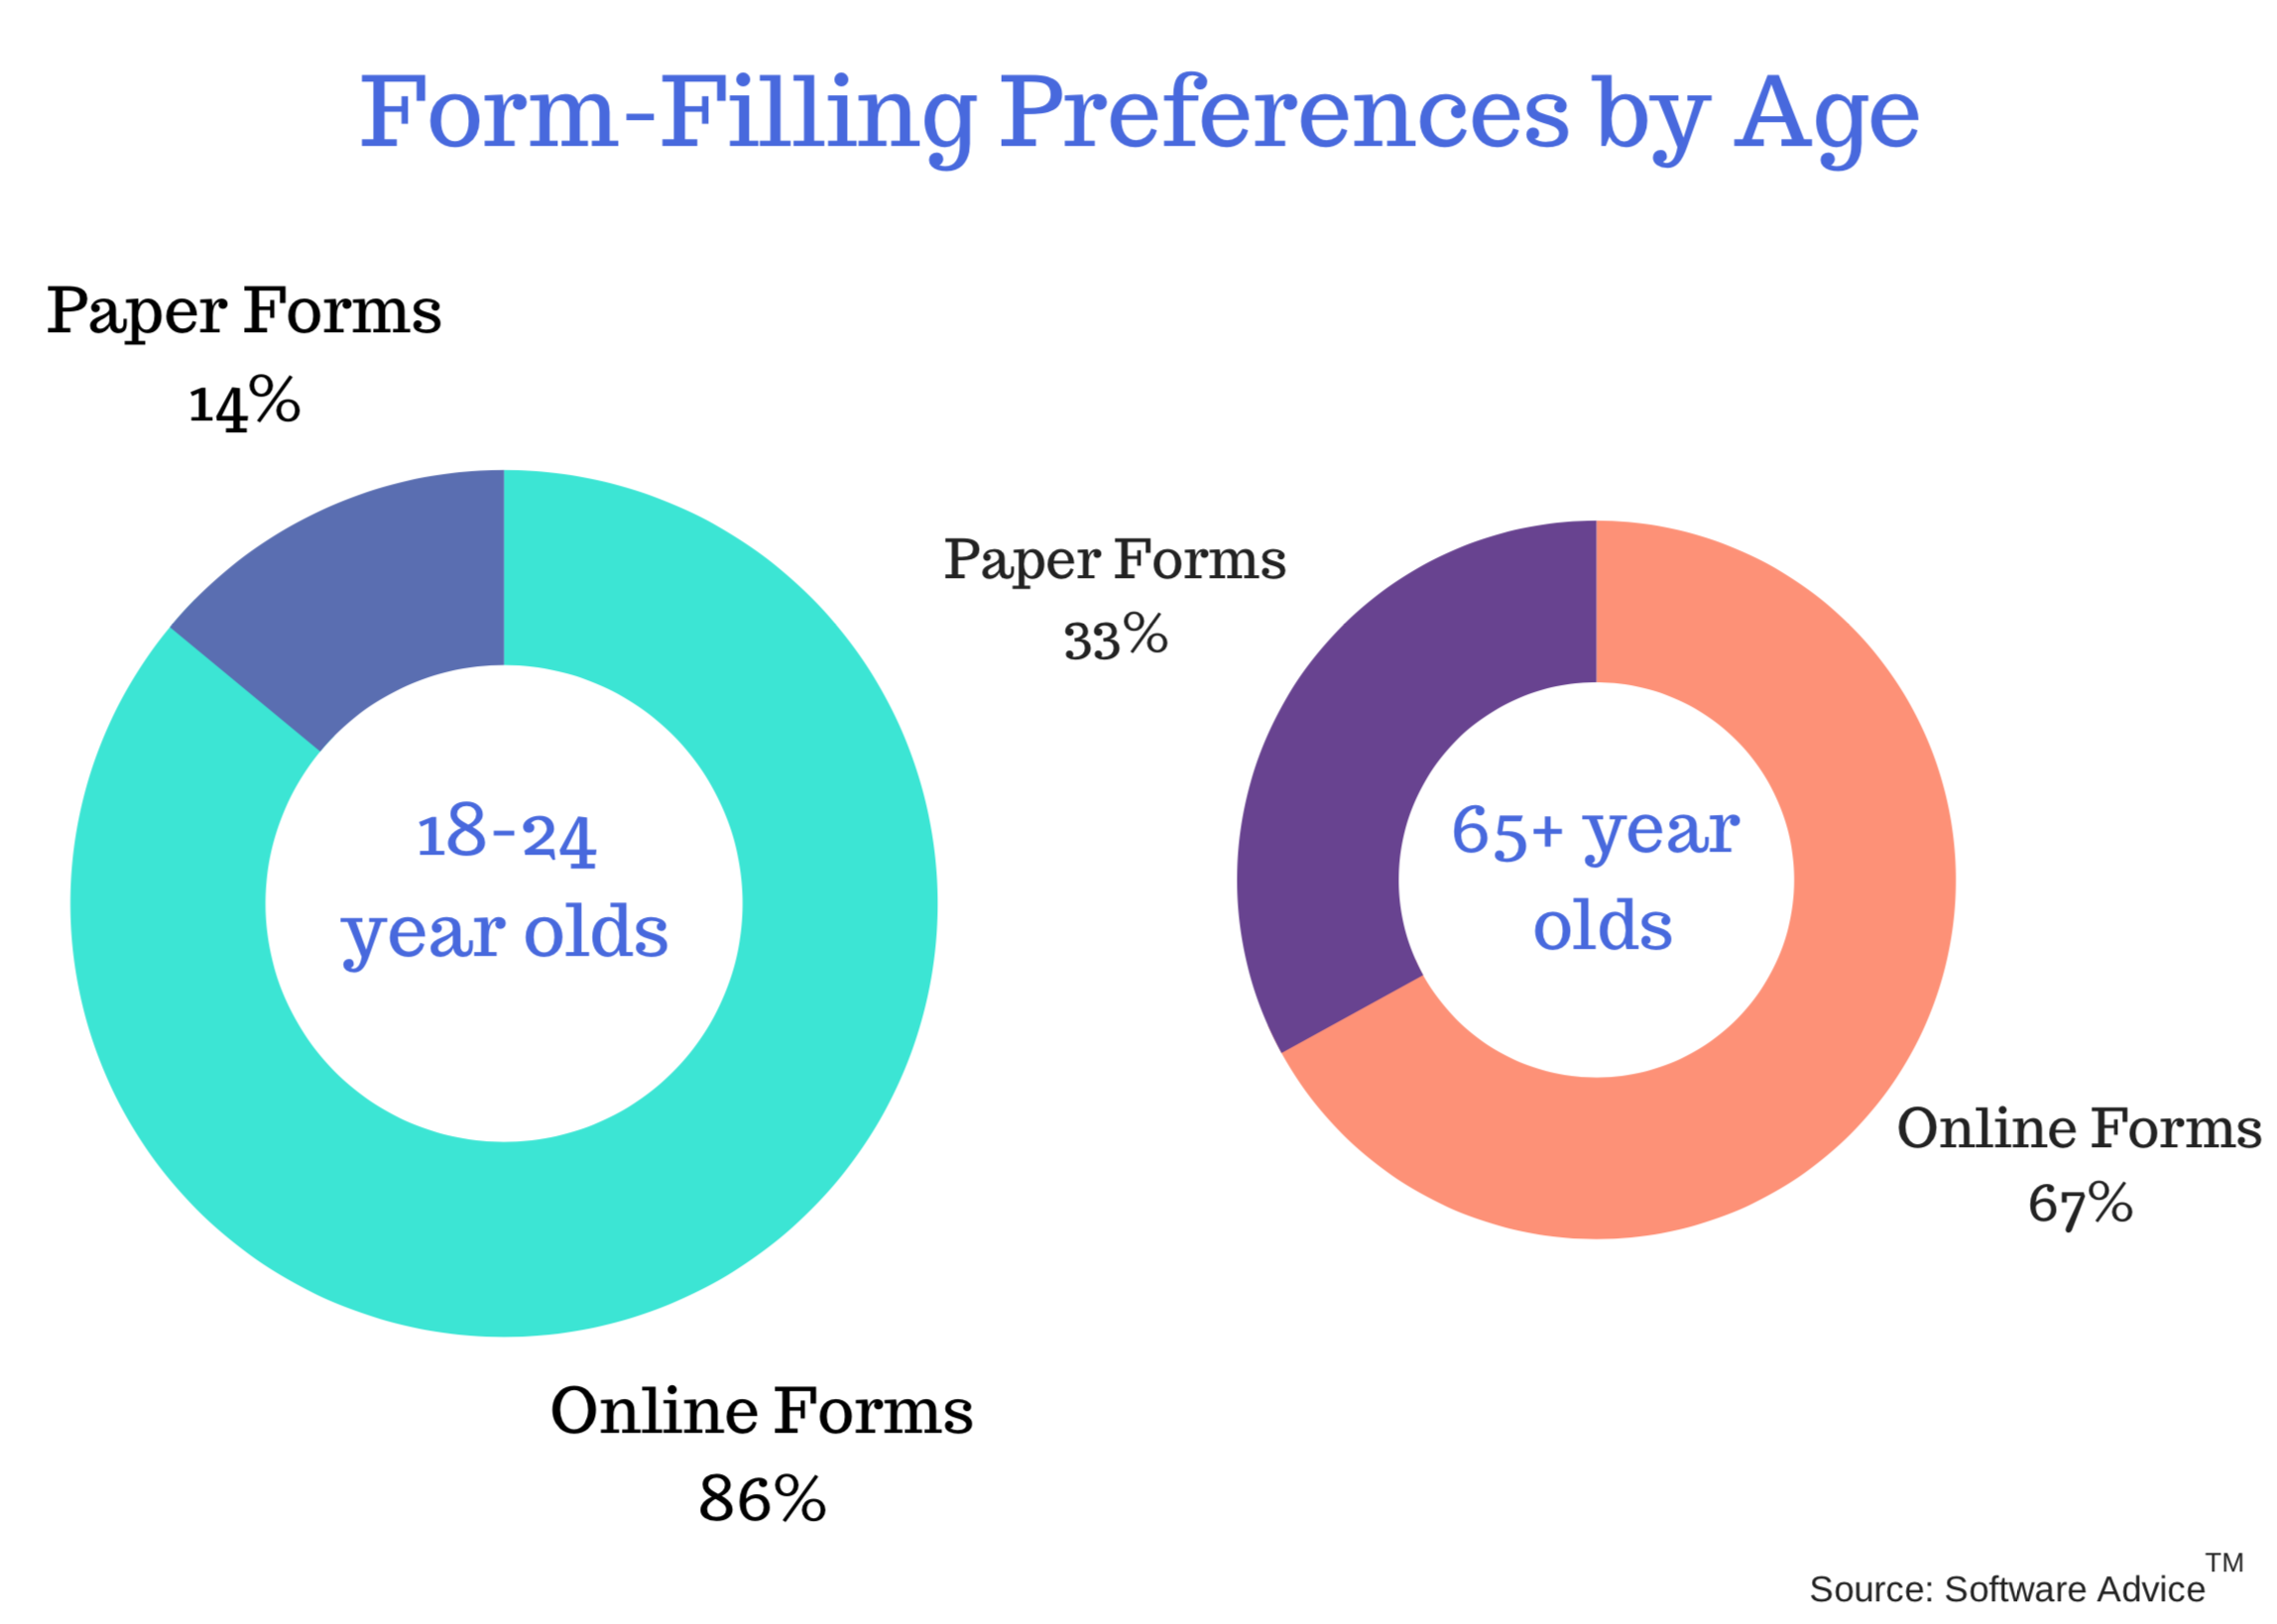 Majority users of all age groups prefer filling forms online.